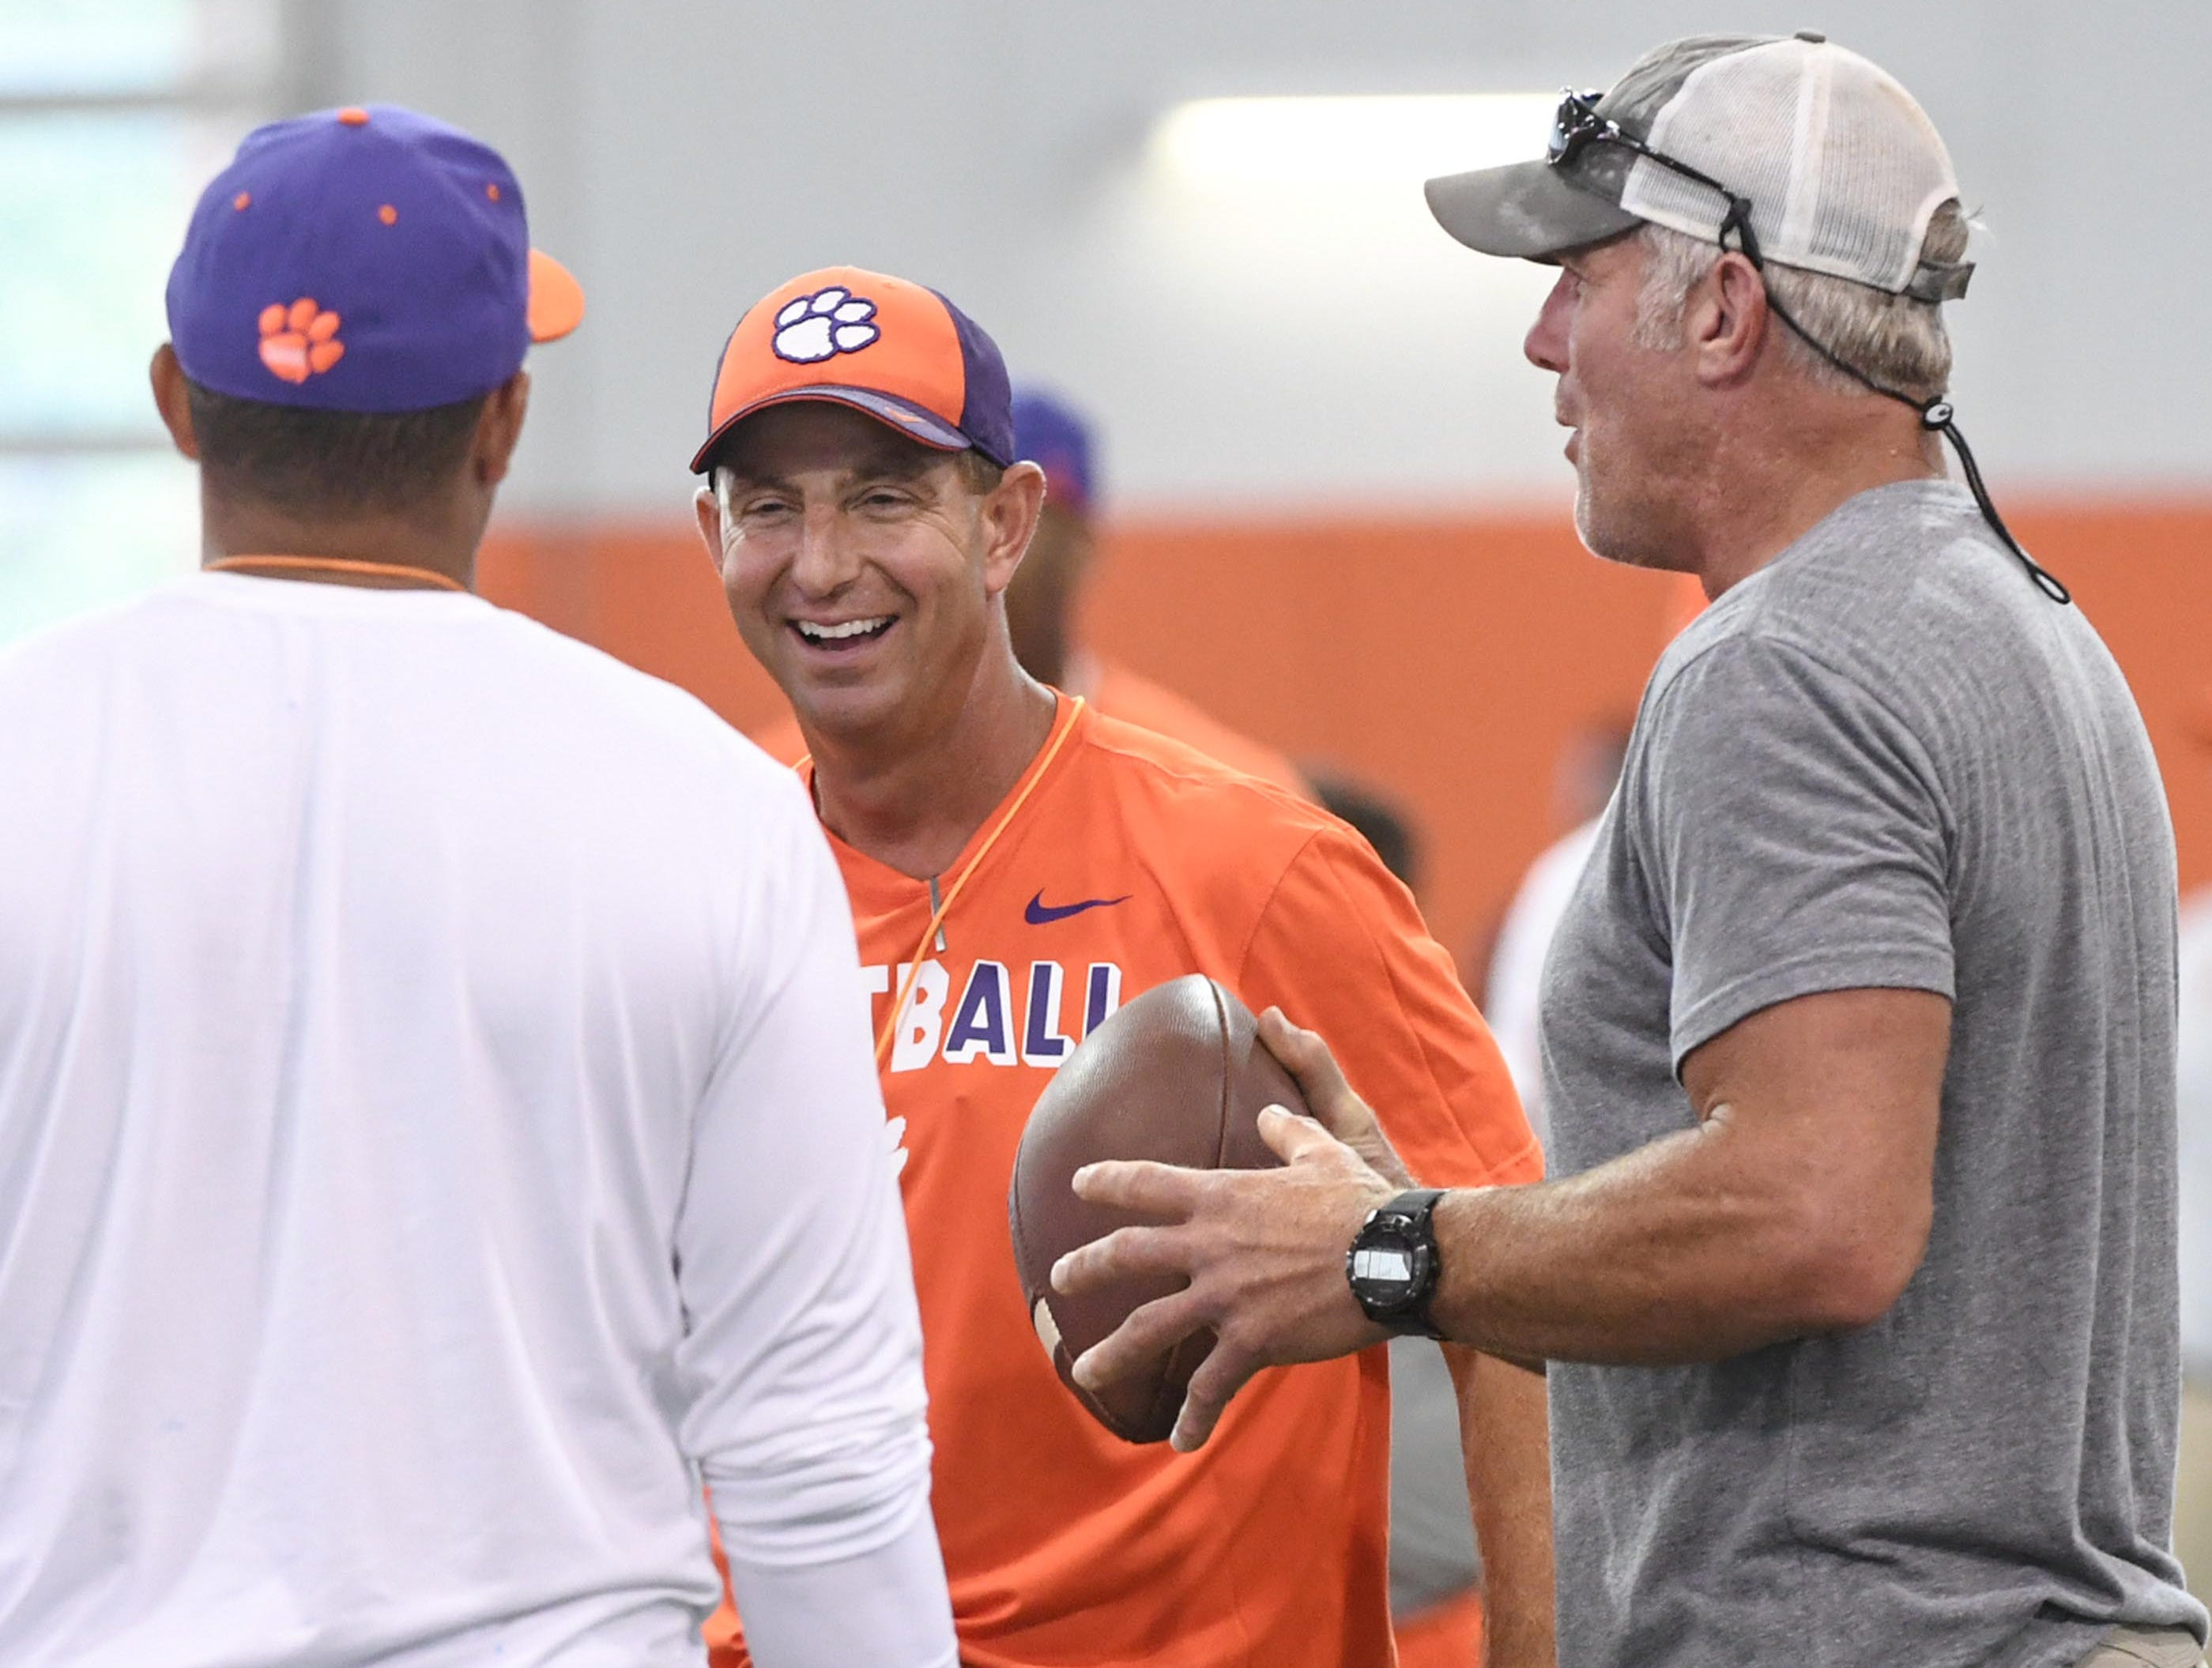 Clemson head coach Dabo Swinney and Brett Favre during fall practice in Clemson on Wednesday.